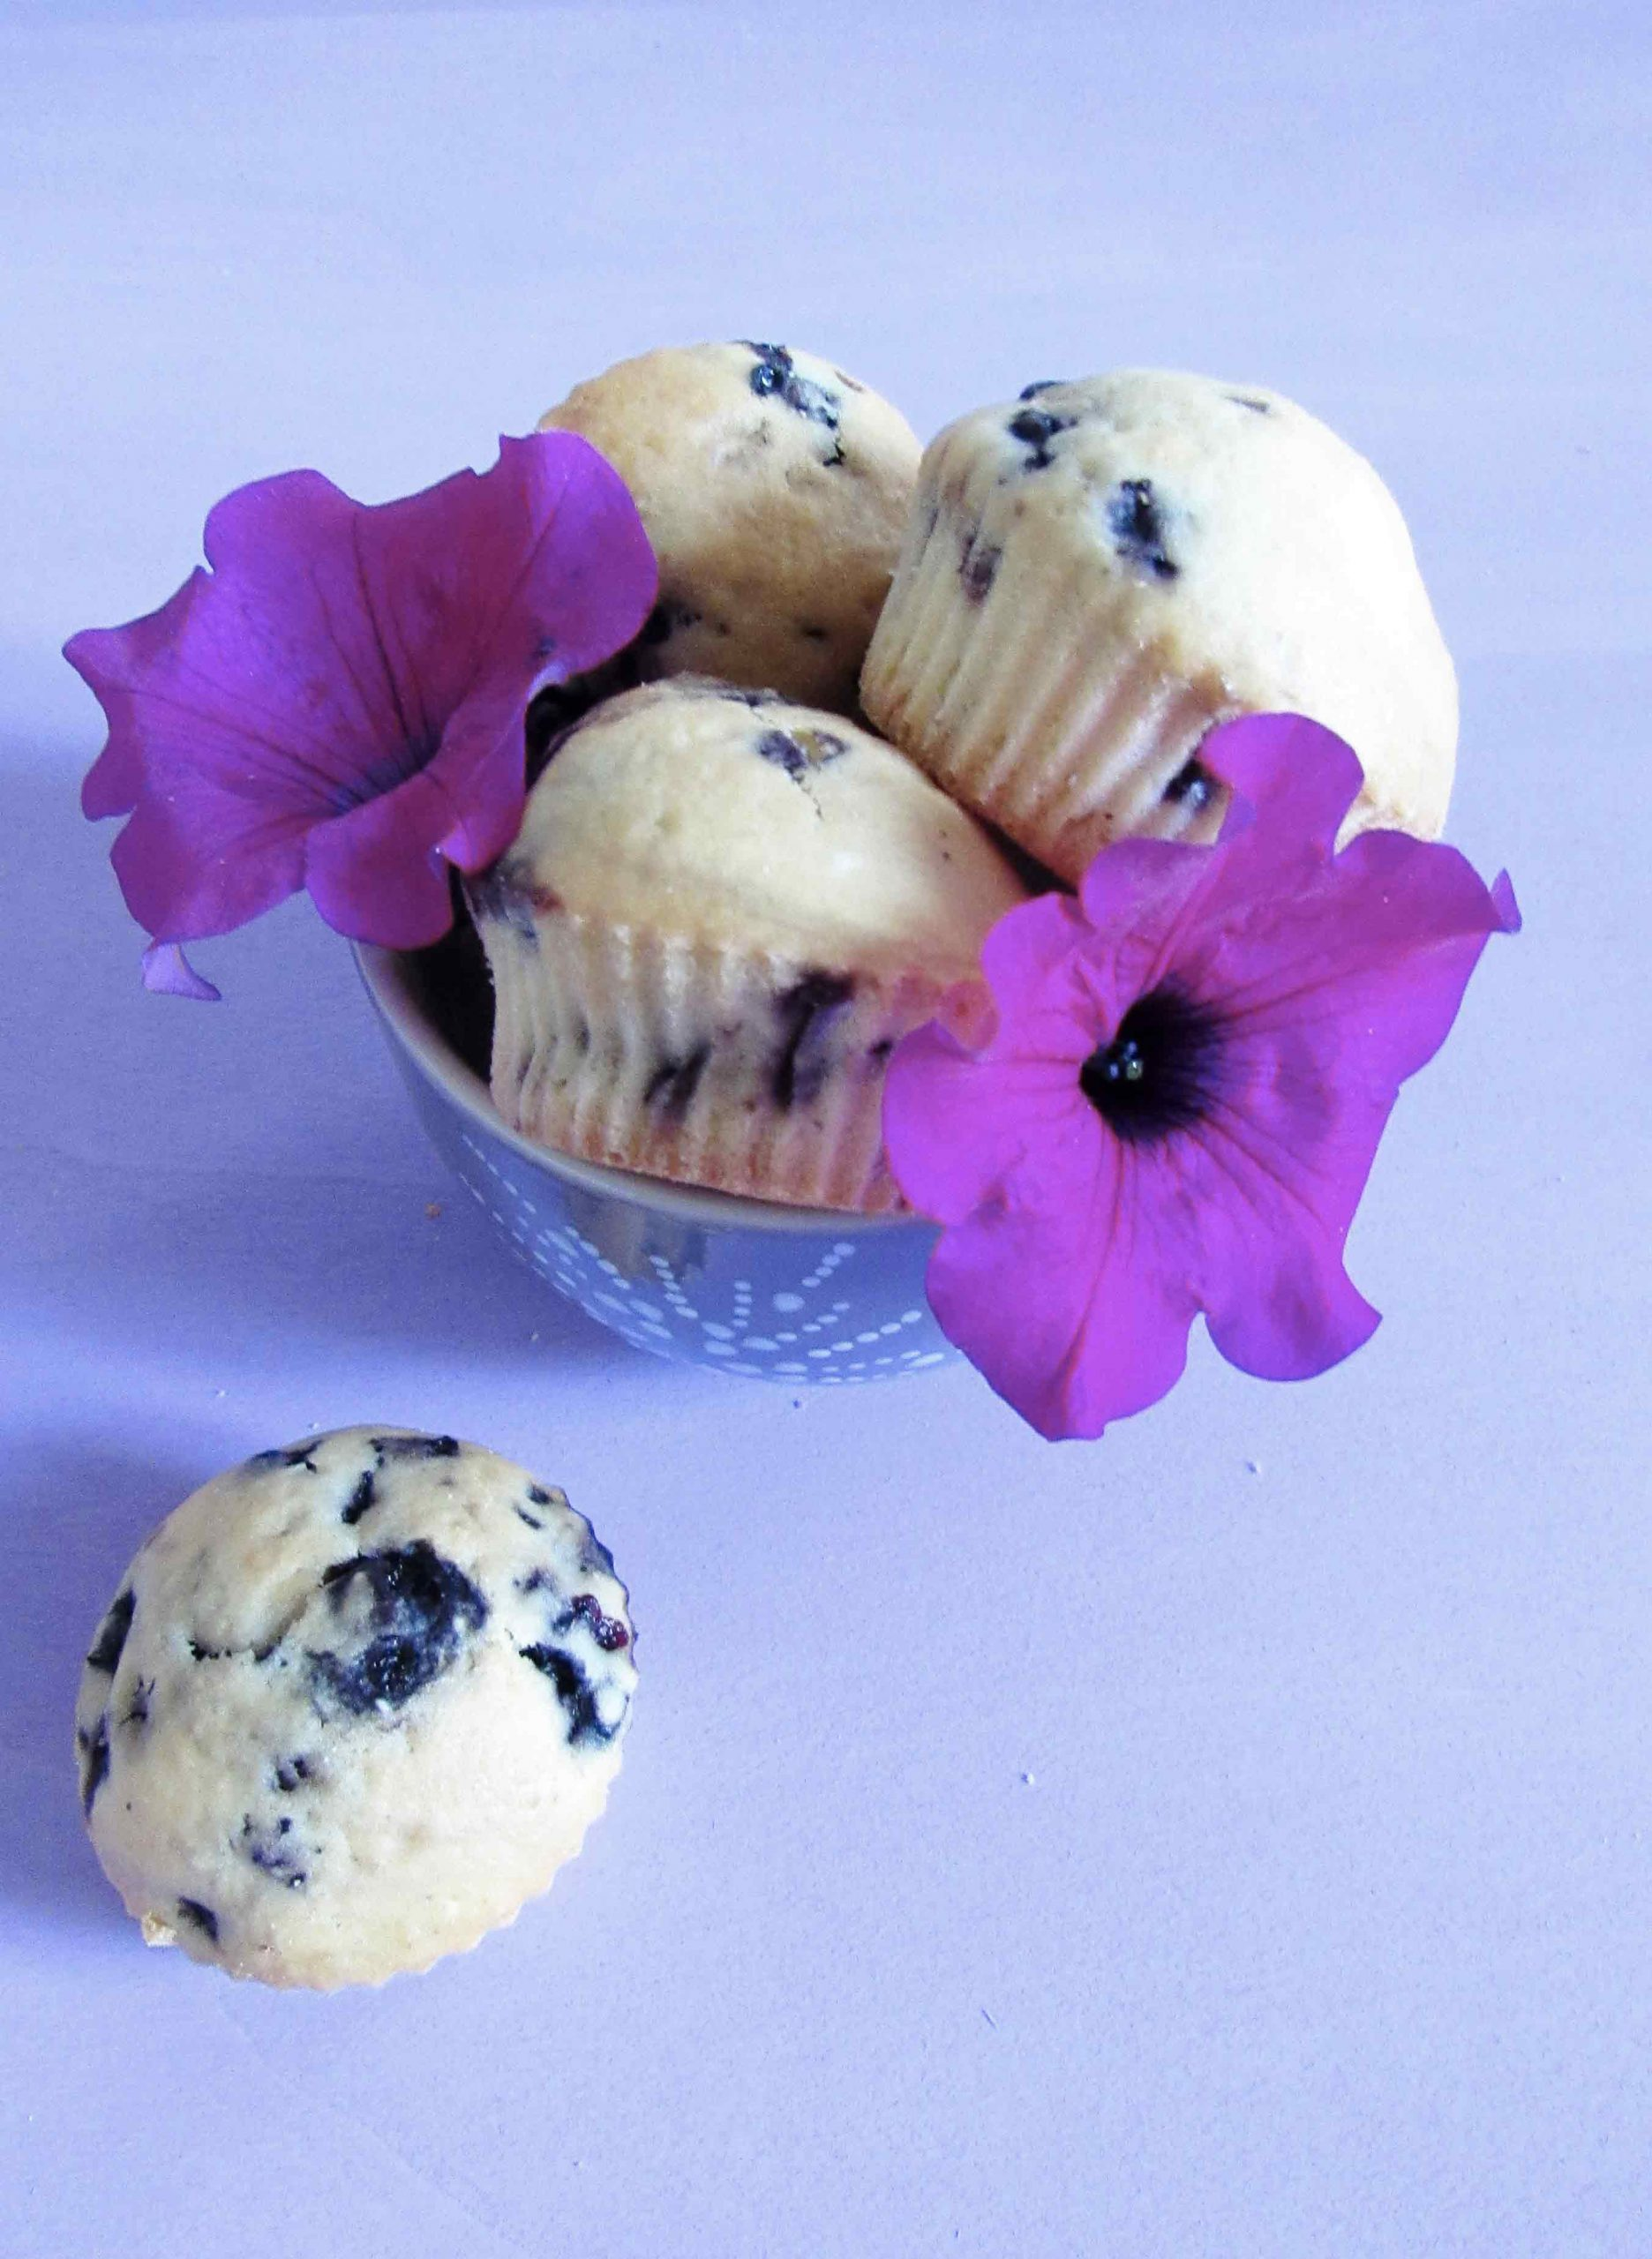 blueberry_muffin_ver_2